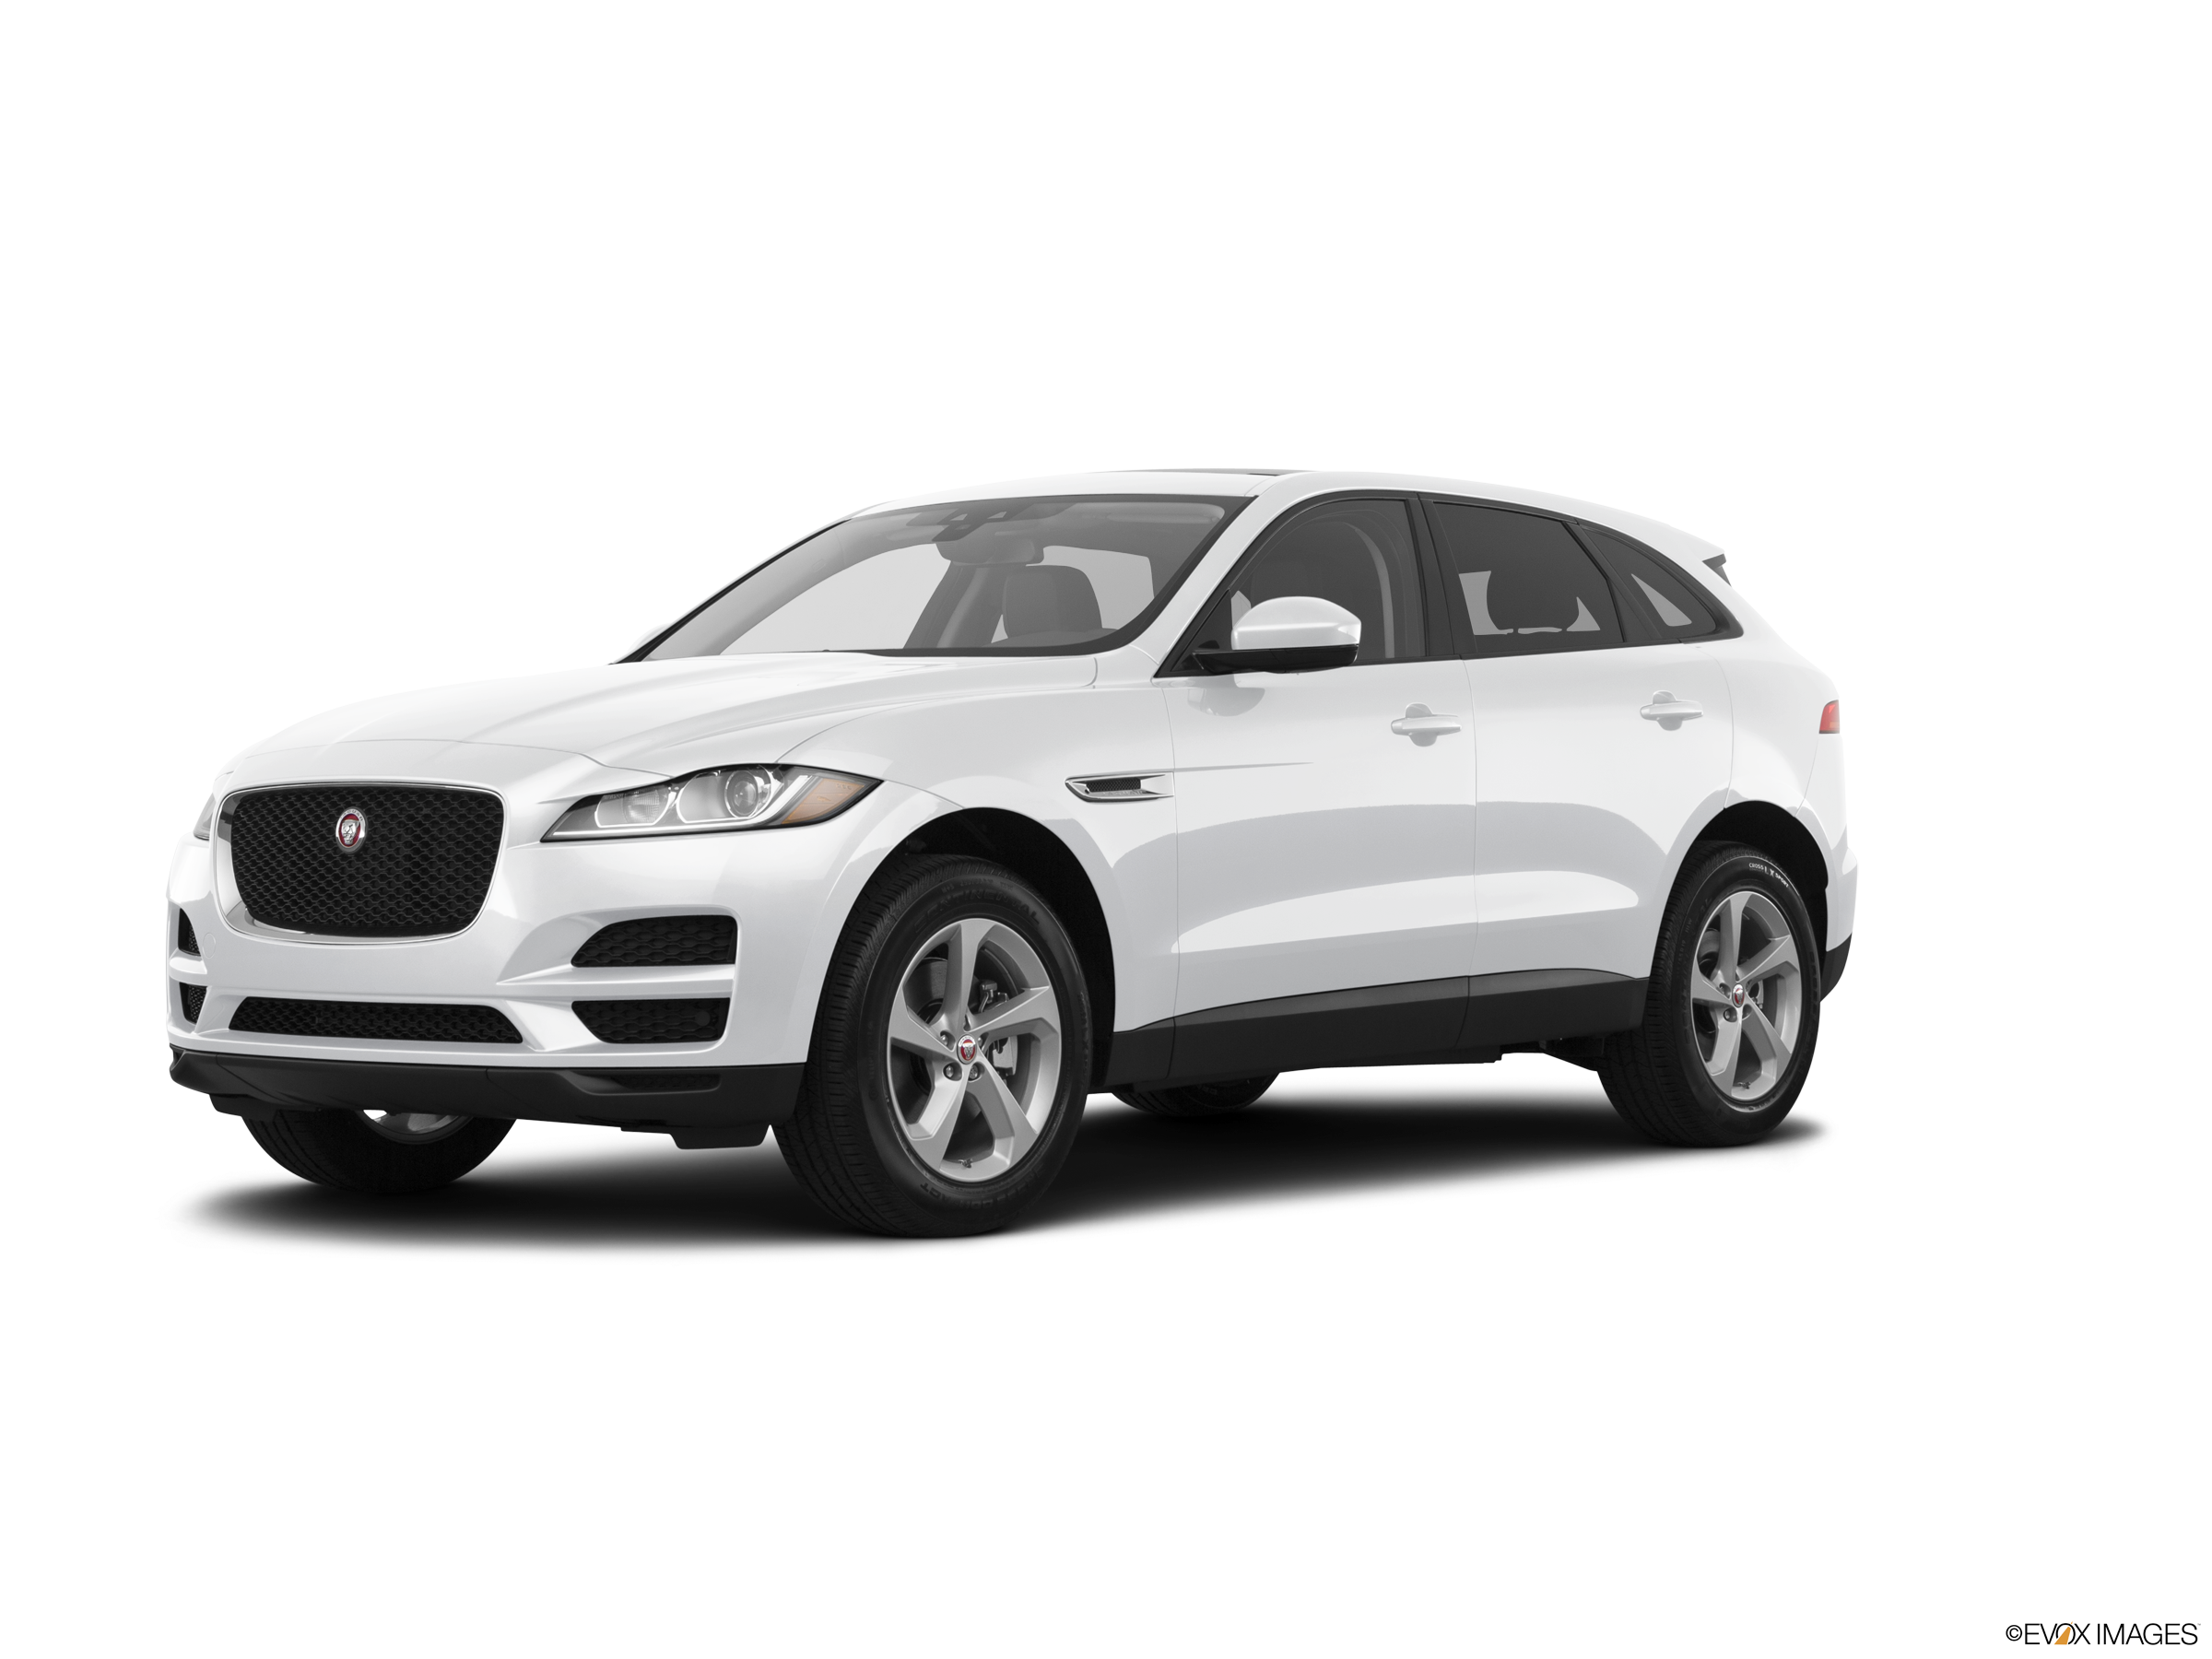 Top Consumer Rated Crossovers of 2017 - 2017 Jaguar F-PACE